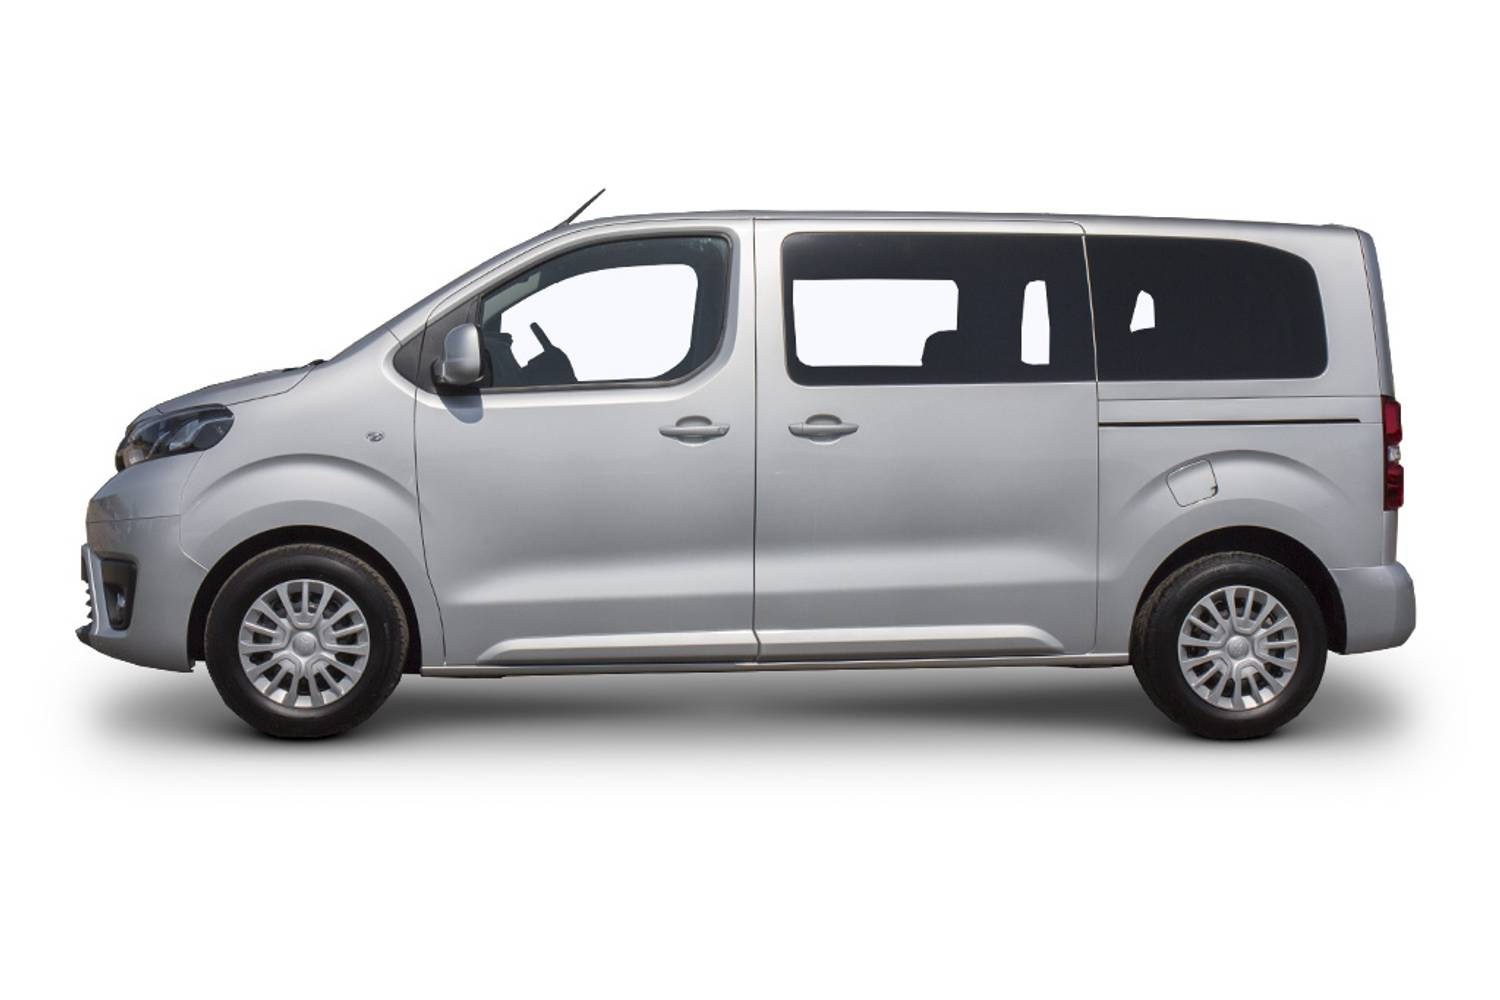 new toyota proace verso diesel estate 2 0d family compact 5 door 2016 for sale. Black Bedroom Furniture Sets. Home Design Ideas